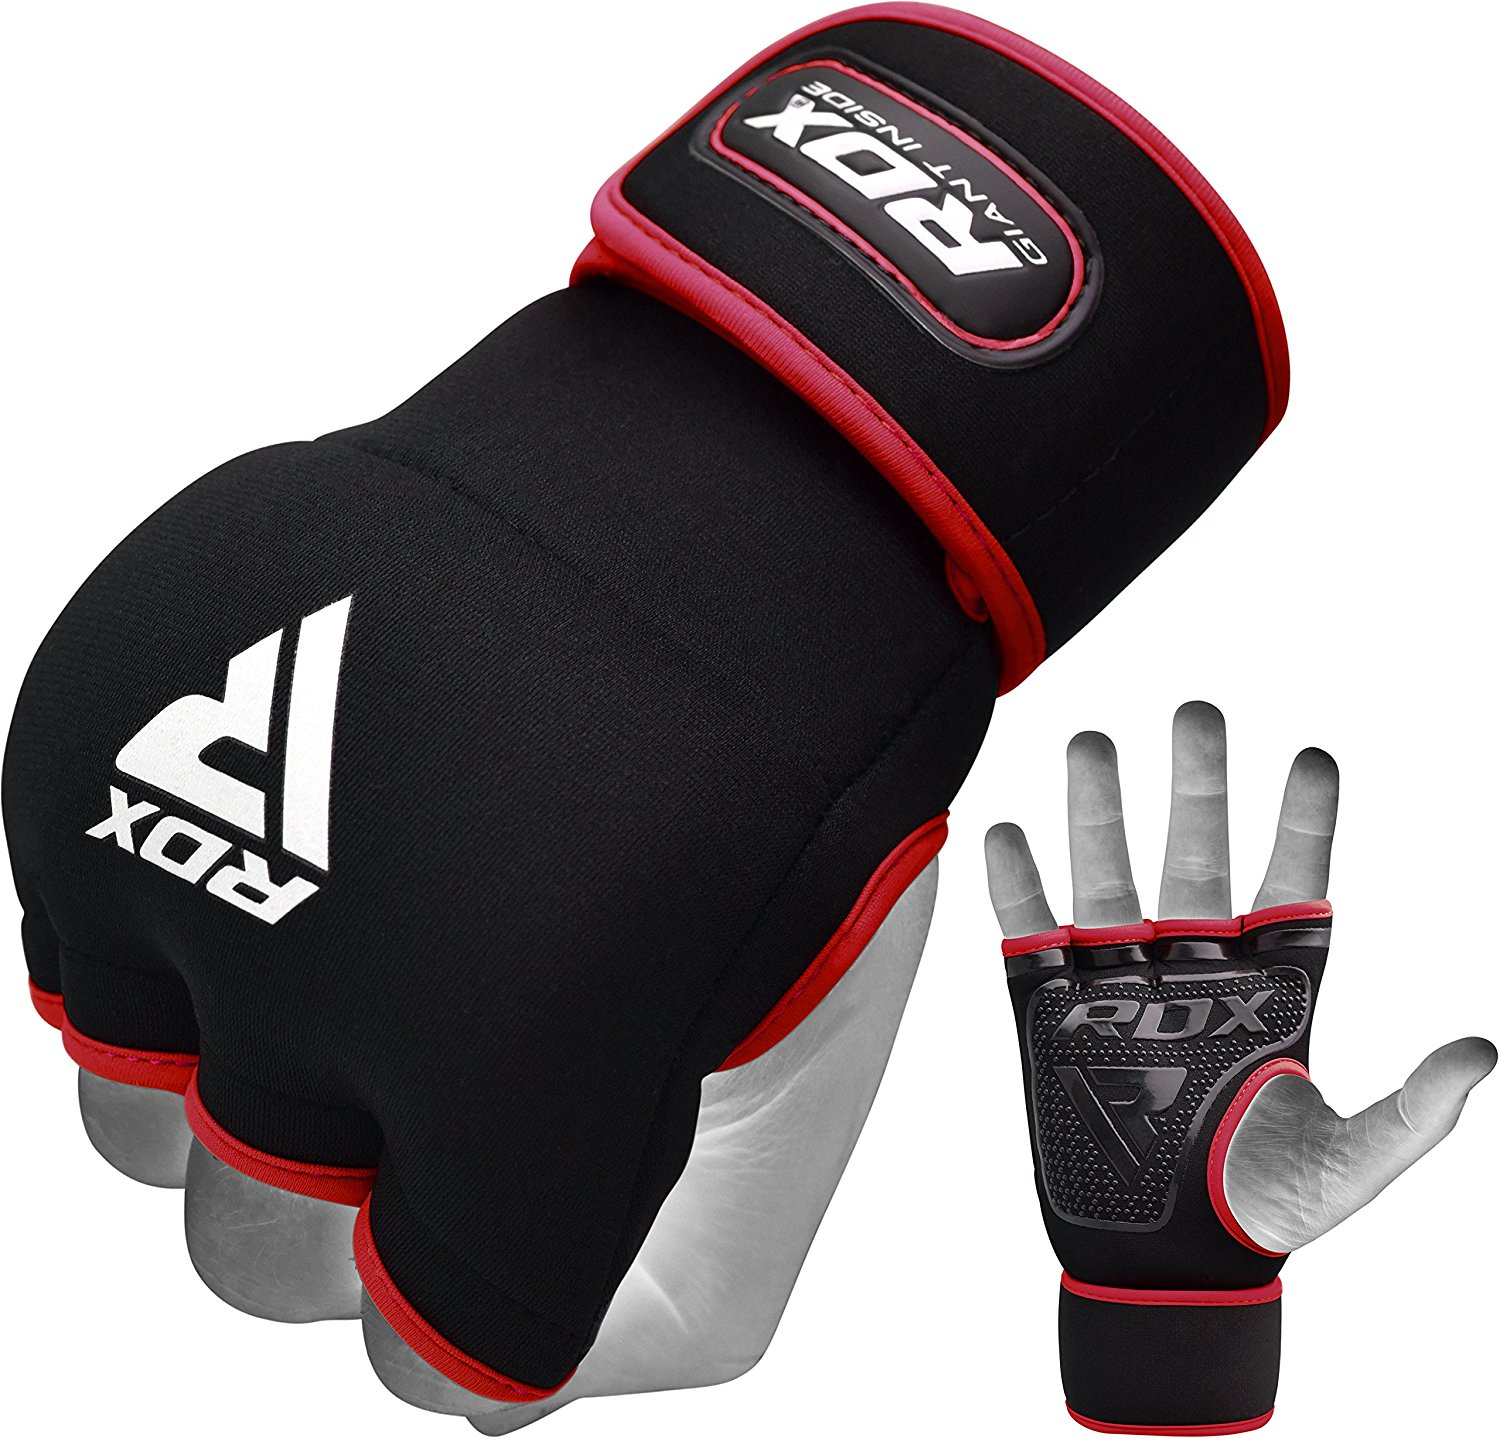 RDX Inner Gloves Hand Wrap MMA Boxing Wrist Strap Support Gel Padded Grip